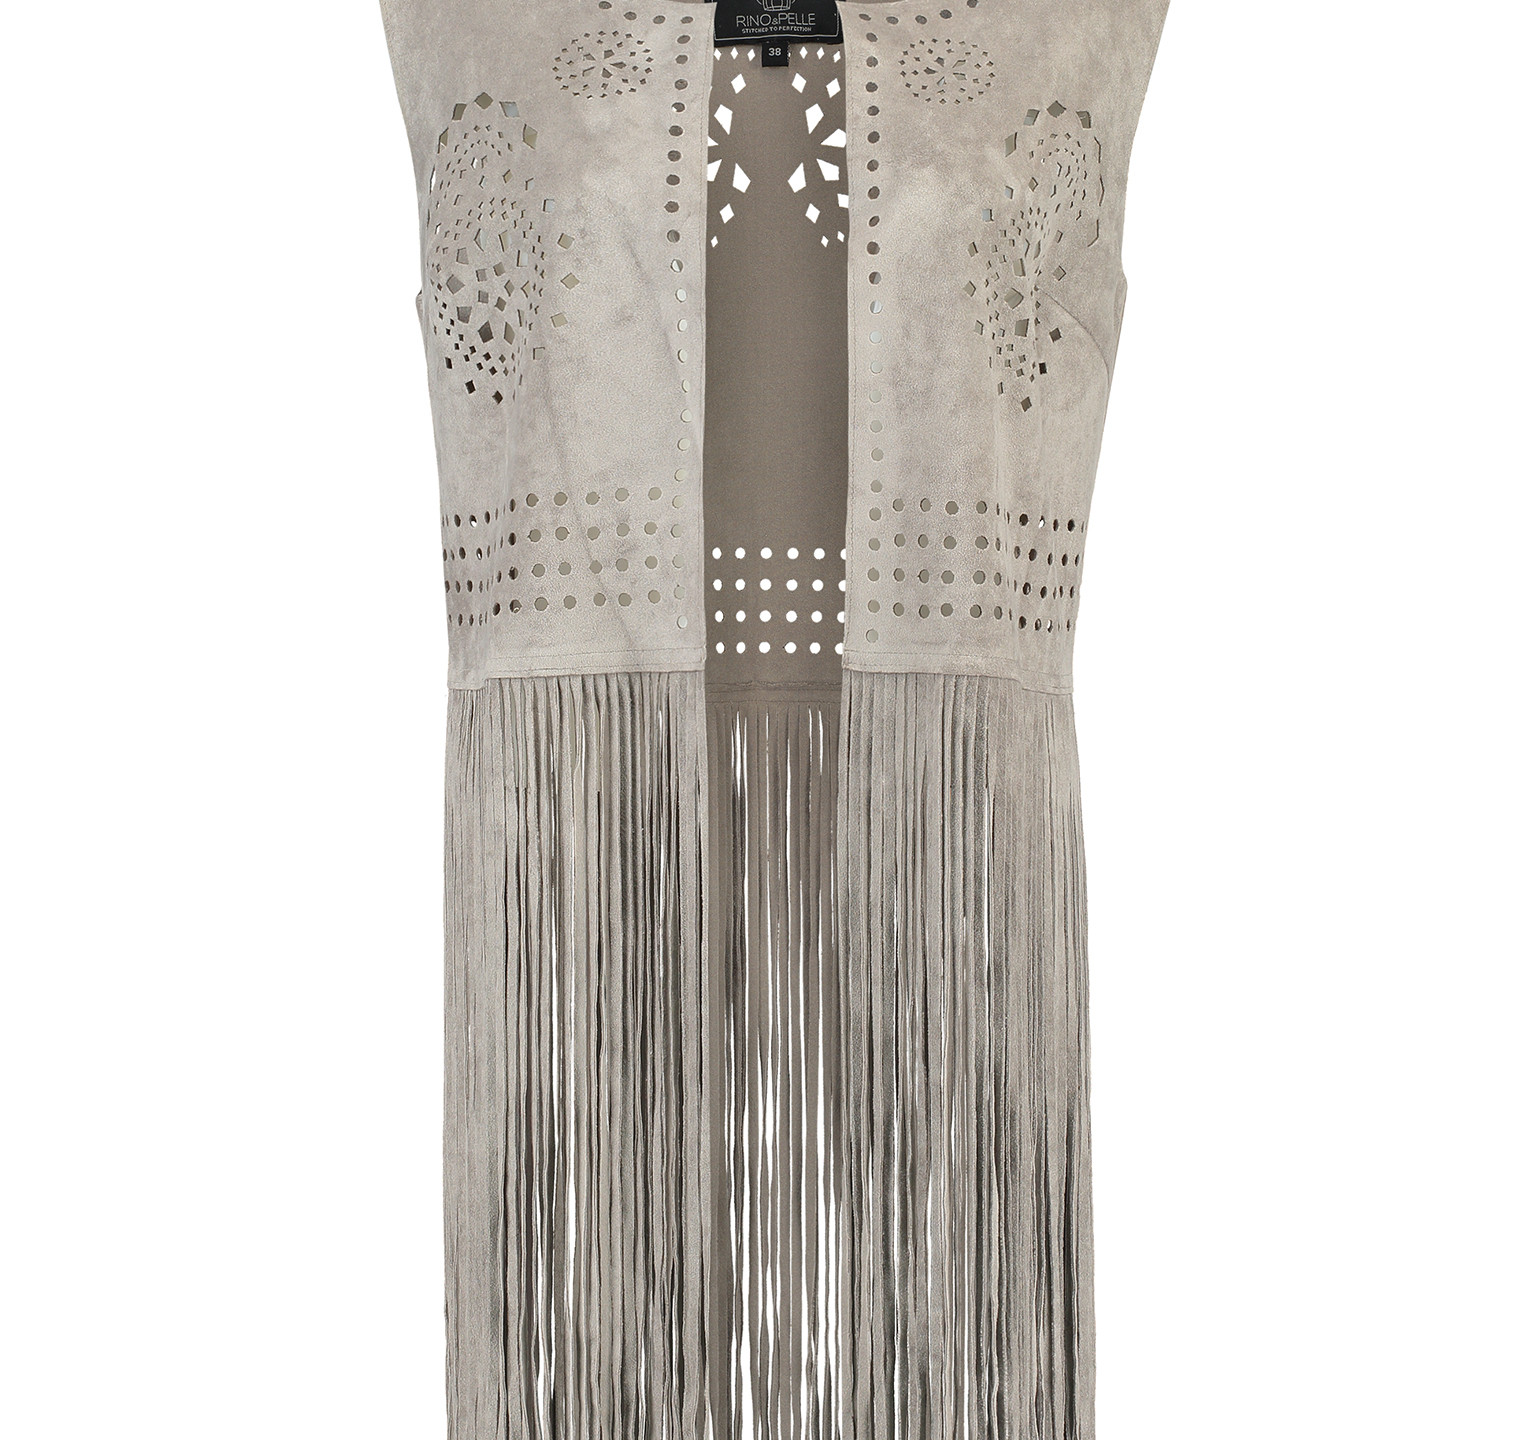 Who doesn't want to look like they're staring in an old western movie? FRINGE WAISTCOAT £74, RINO&PELLE AT VOISINS